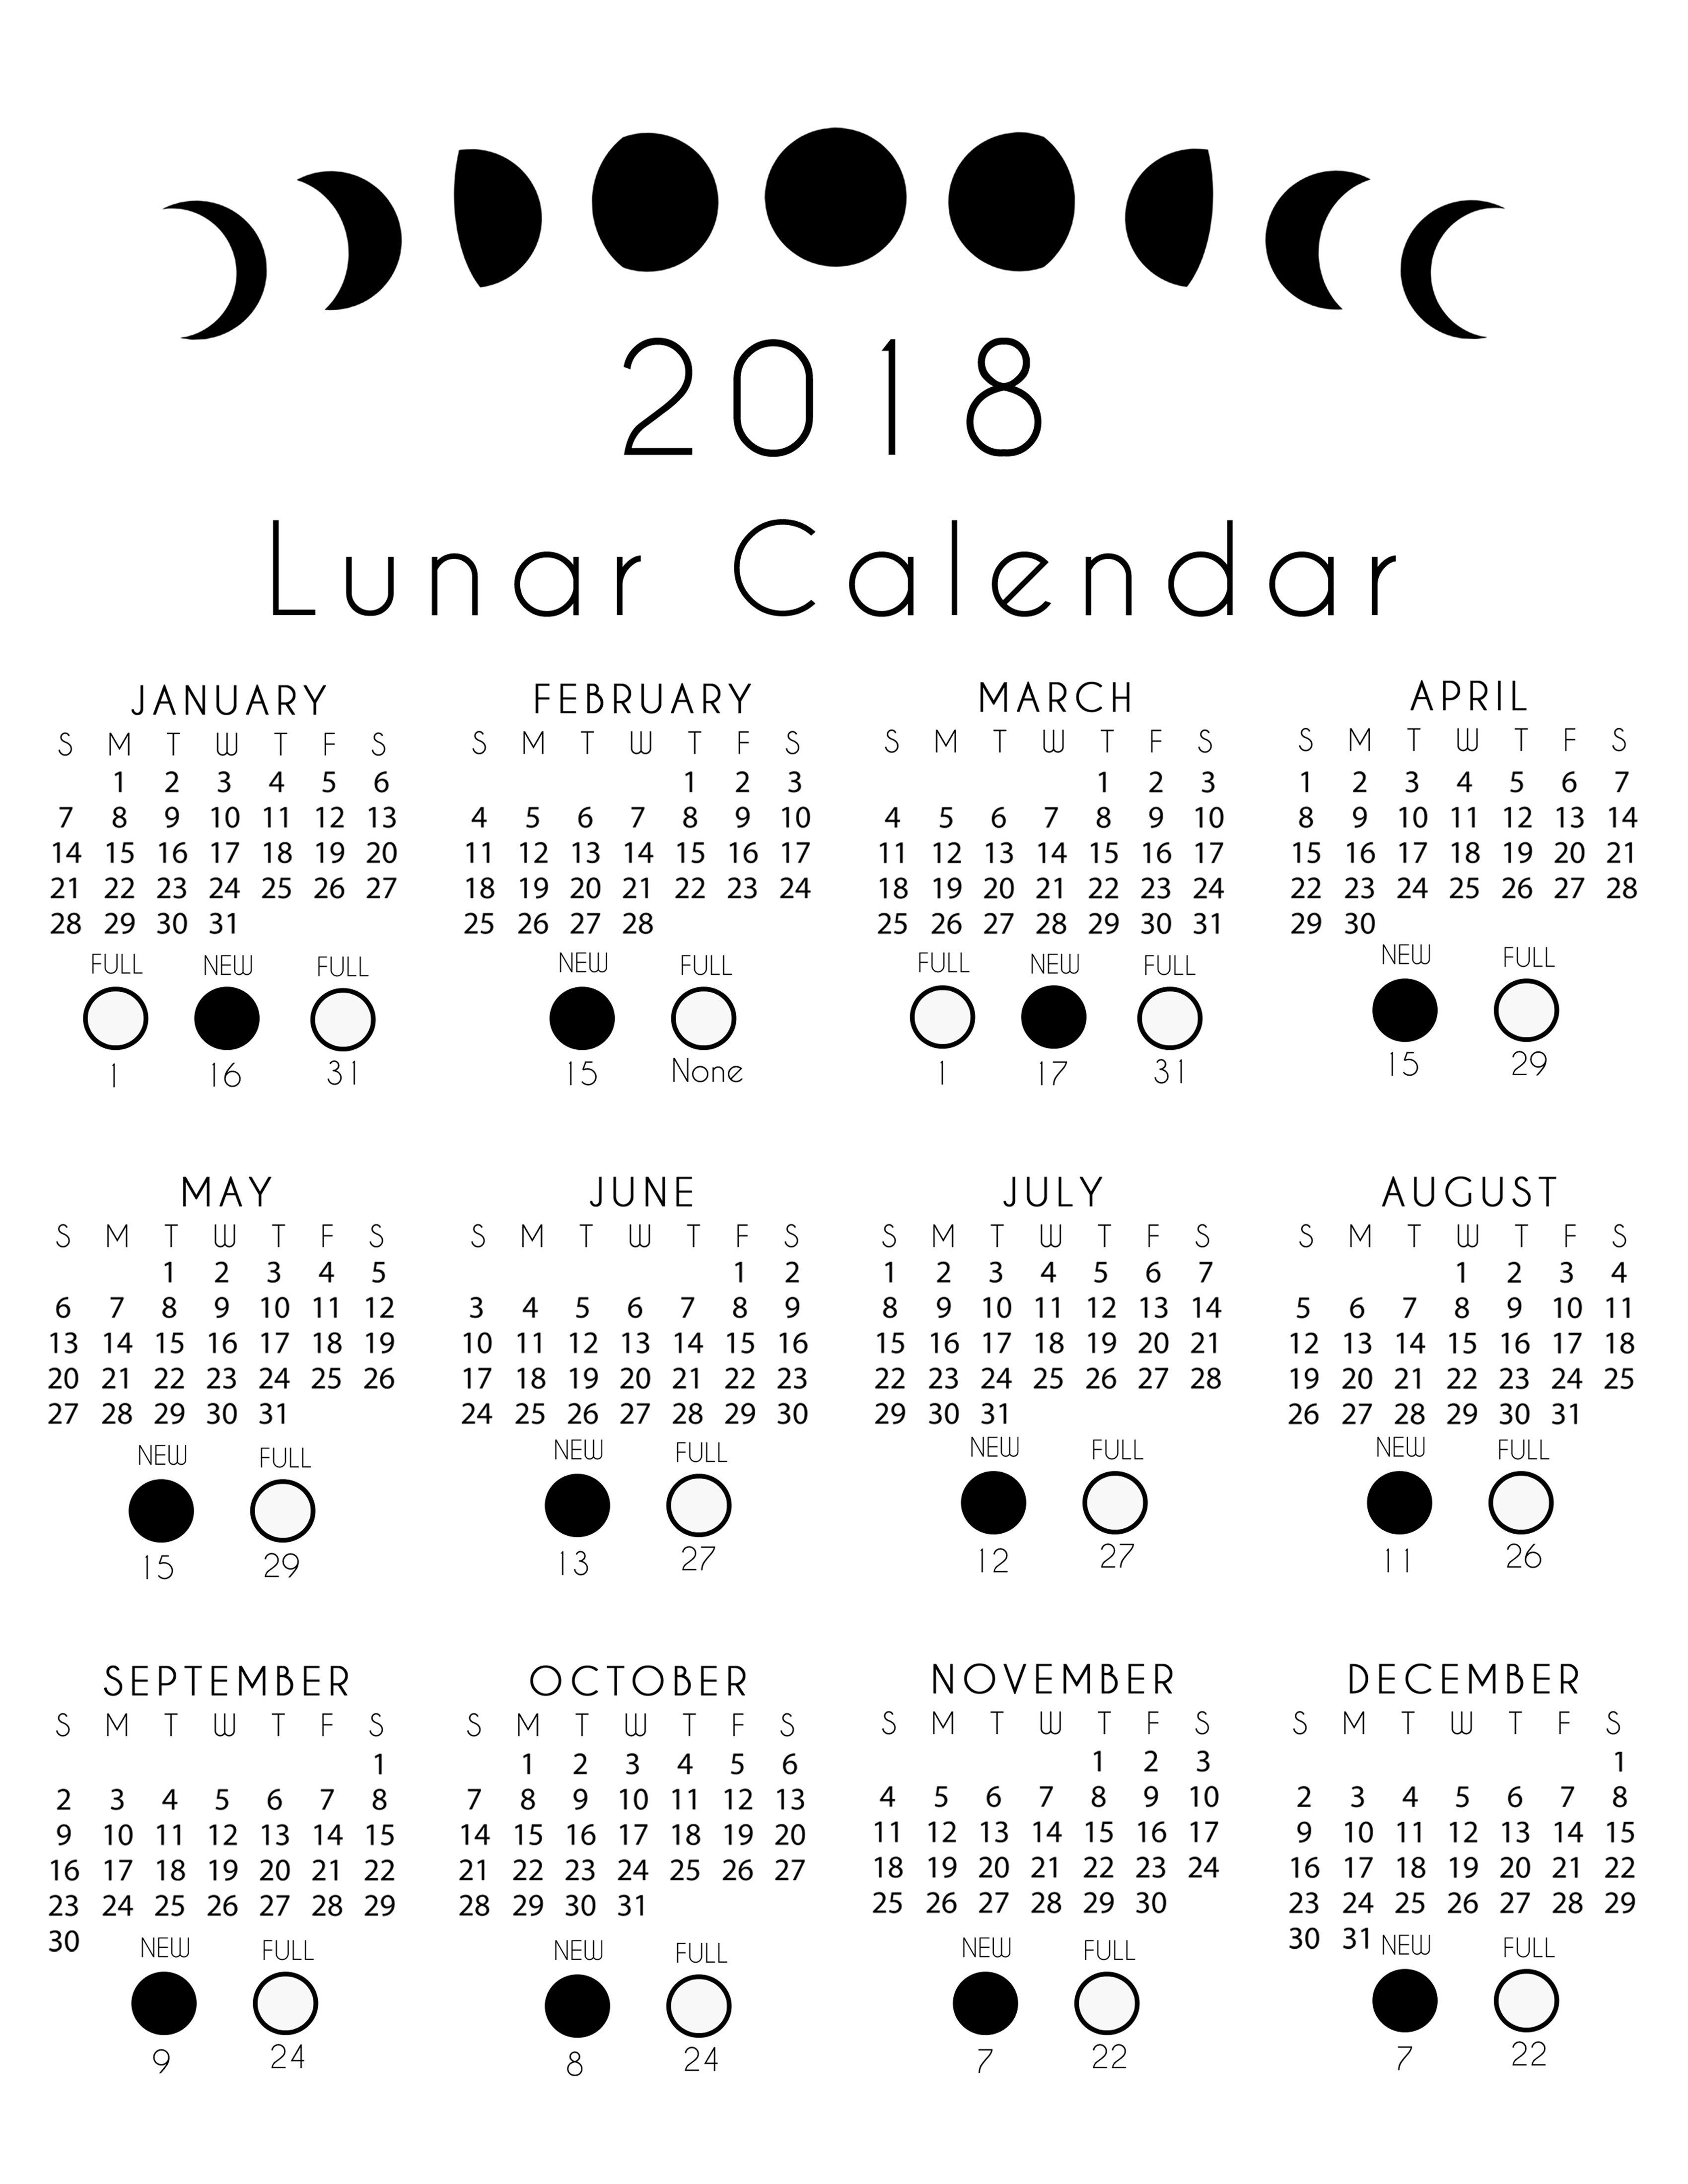 Lunar Calendar Free Printout With Images